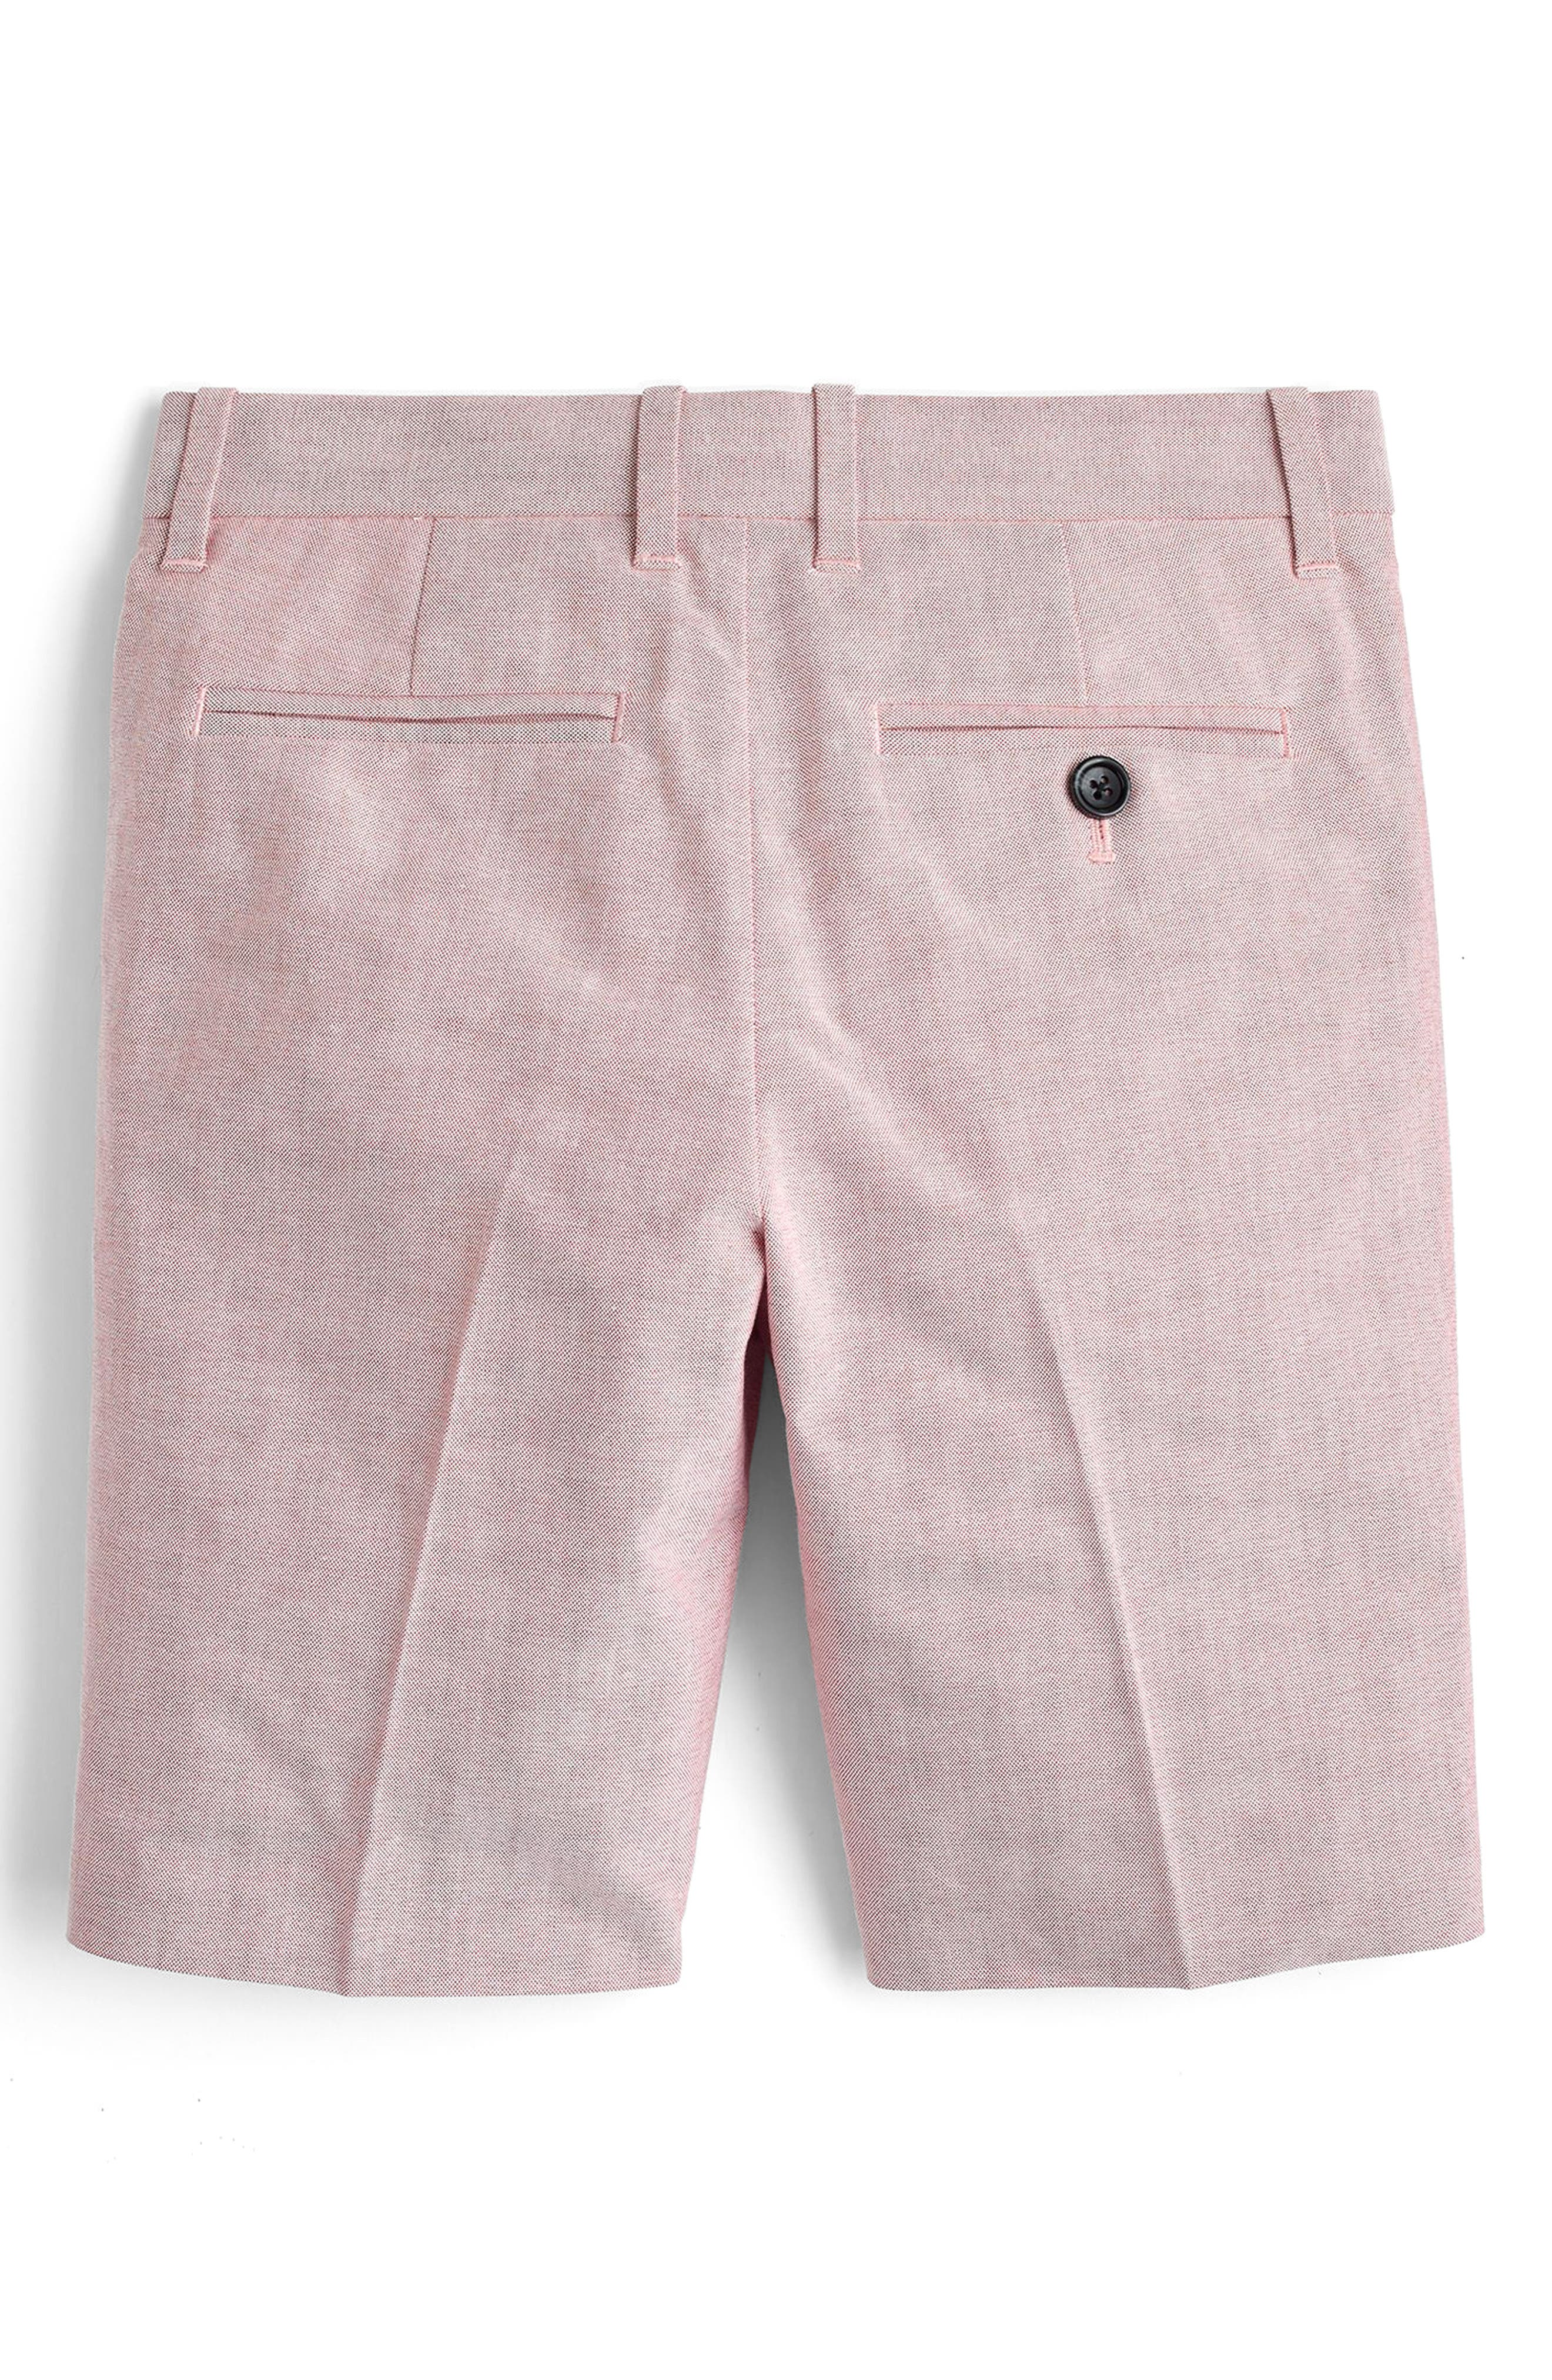 Ludlow Stretch Oxford Suit Shorts,                             Alternate thumbnail 2, color,                             Light Red